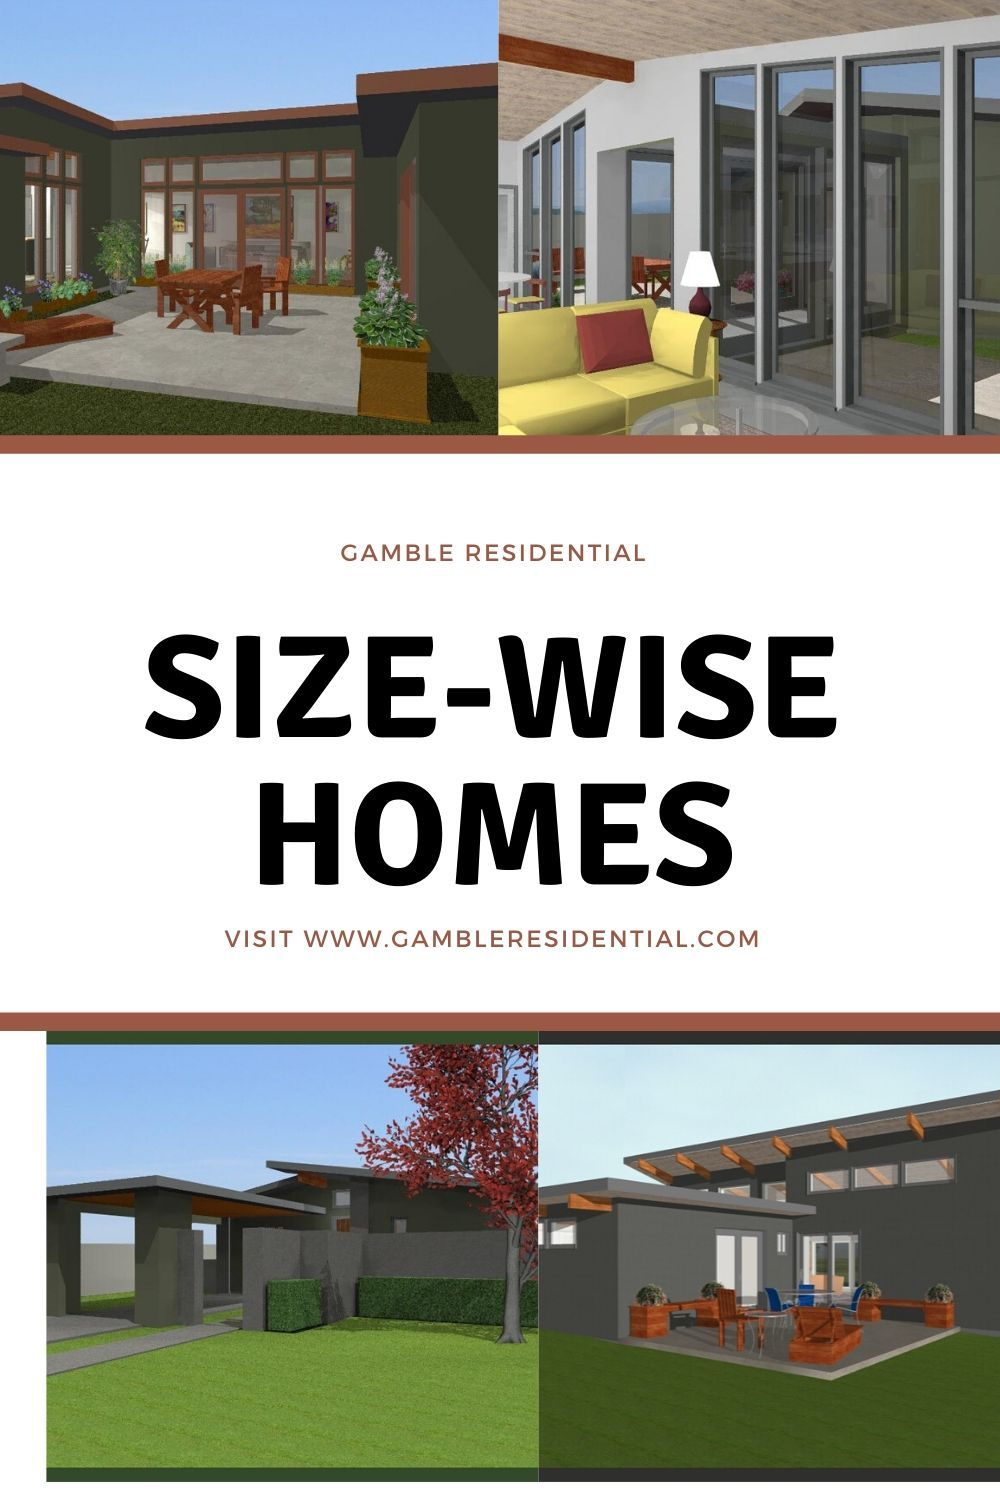 Responsible Living With Size Wise Homes From Gamble Residential Build Your Dream Home Small House Plans House Plans